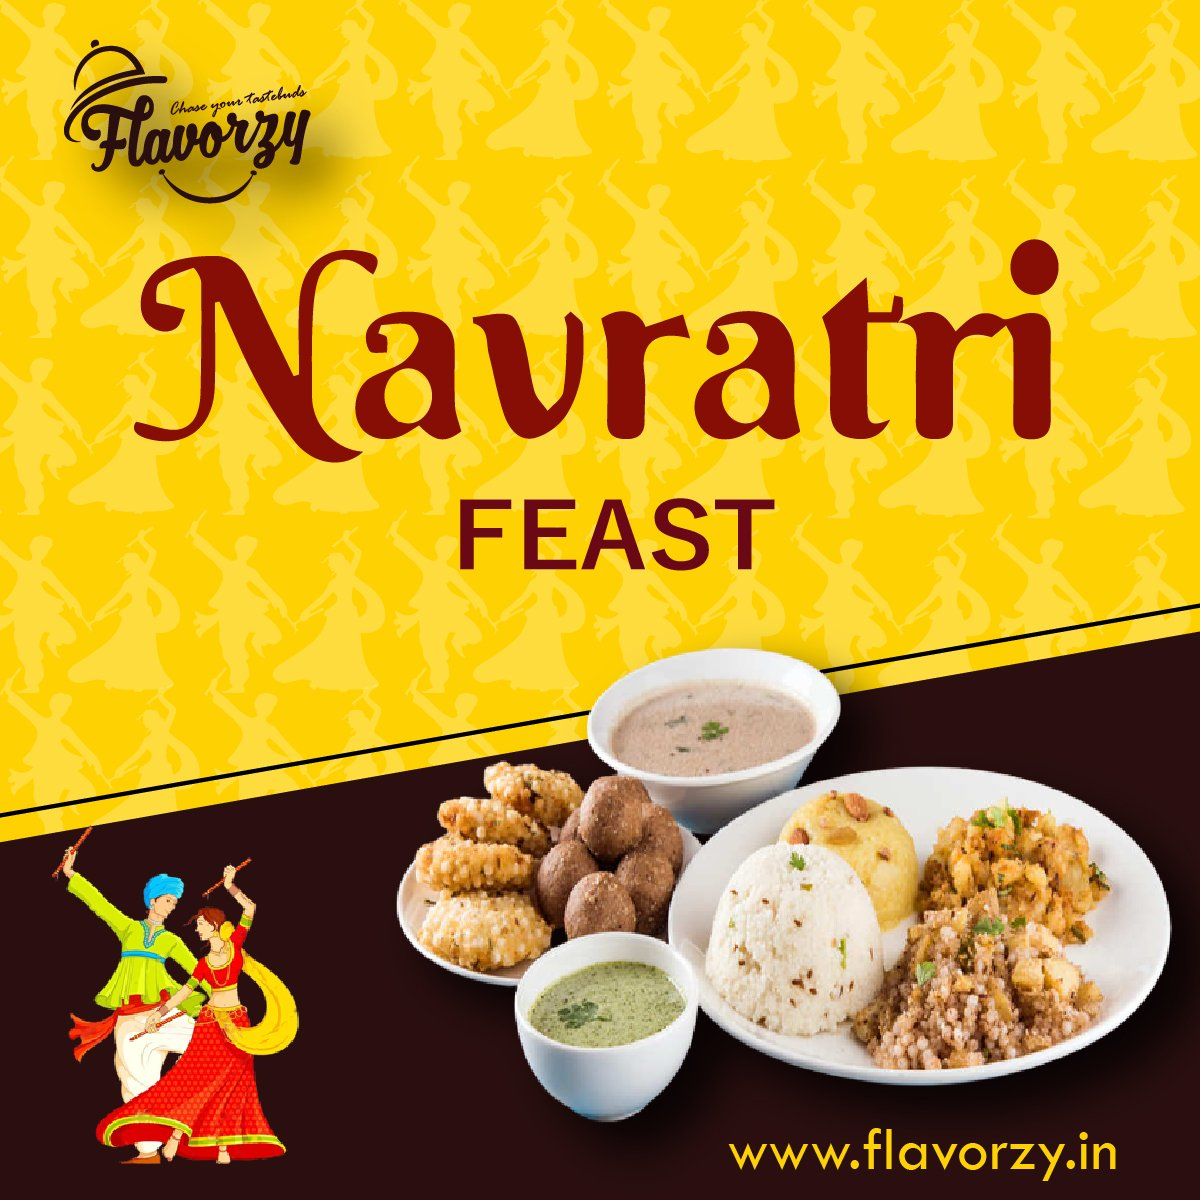 Happy Navratri!  The color Yellow signifies the happiness and optimism of enlightenment.  Chase your taste buds and follow us for great offers and deals.  #orderfoodonline #restaurants #foodindustry #Dubai #freshfood #foodservice #savetime #Sharjah #veganfriendly #UAE https://t.co/1eExRT2J46